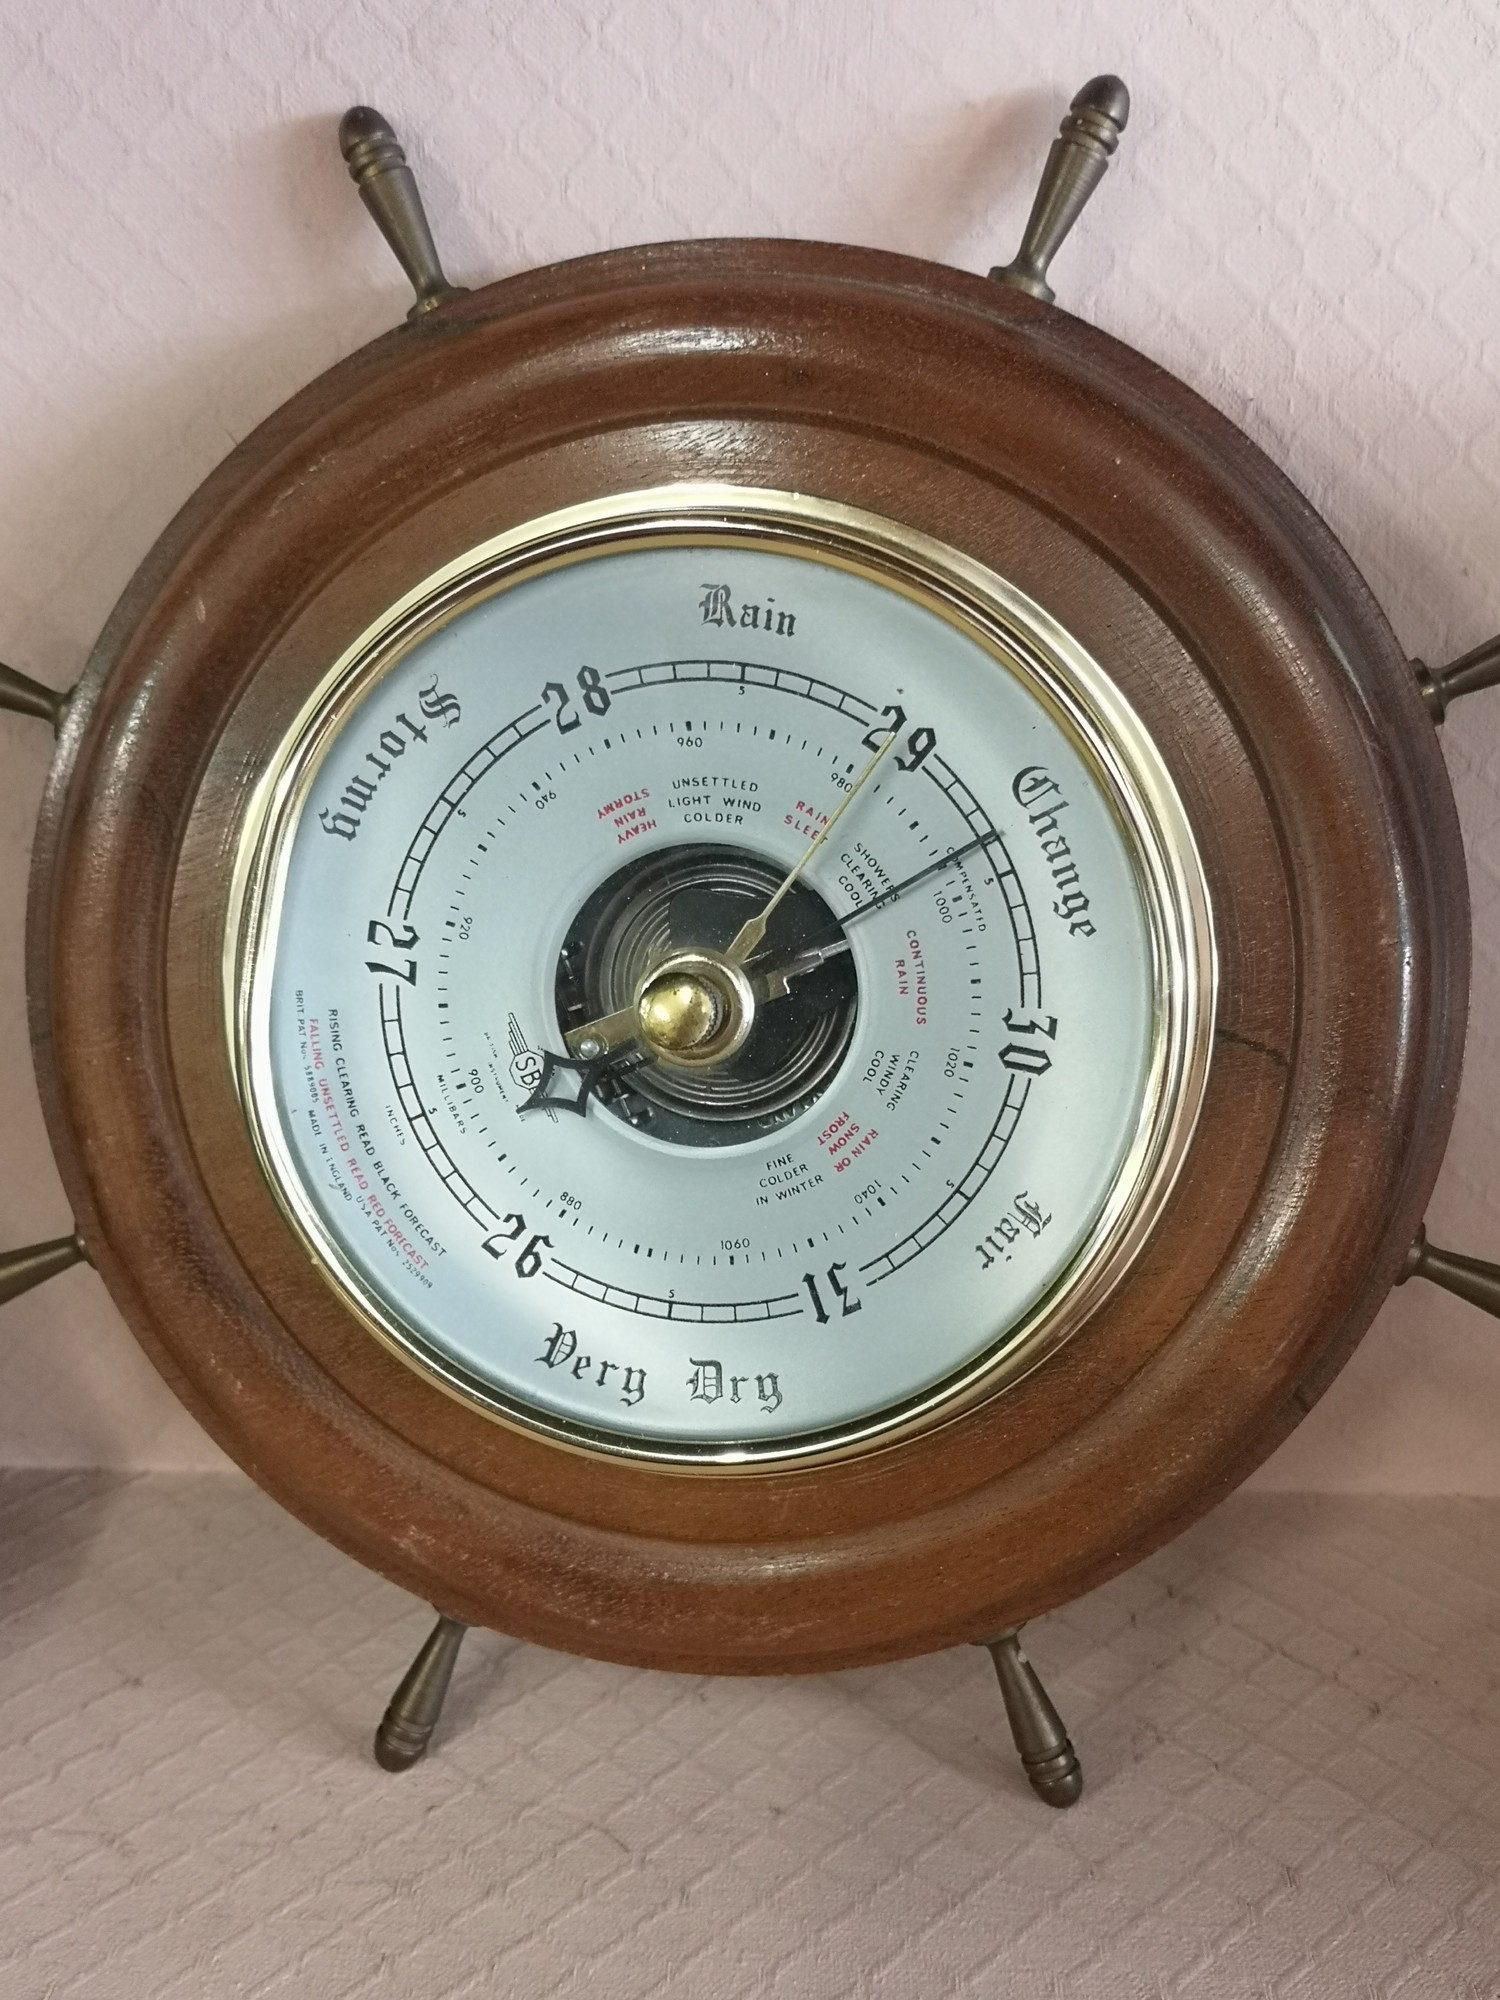 Lot of collectables includes barometer, royal doulton figure penny etc. - Image 2 of 6